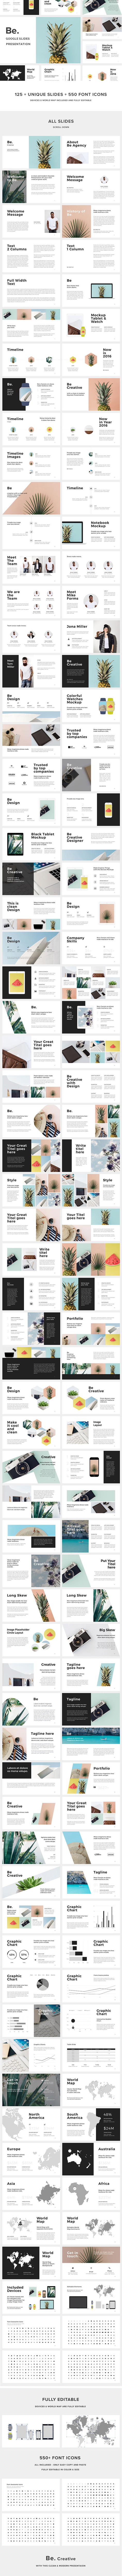 Be. Google Slides Presentation - Google Slides Presentation Templates